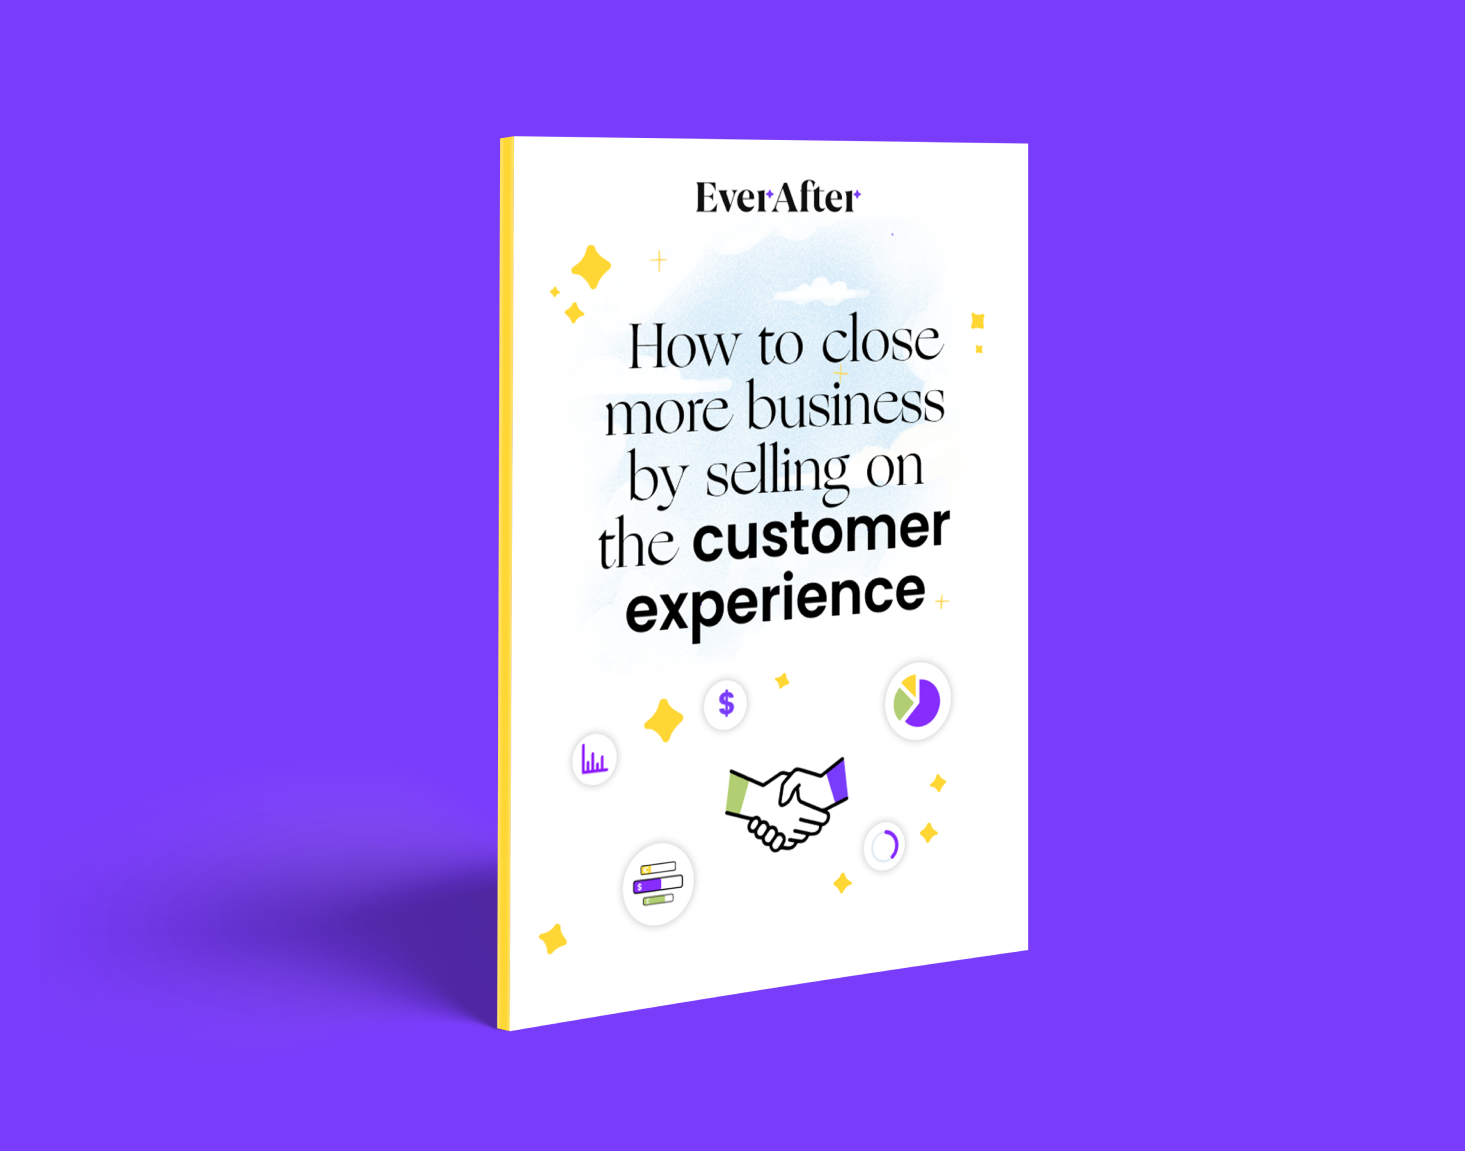 How to close more business by selling on the customer experience.